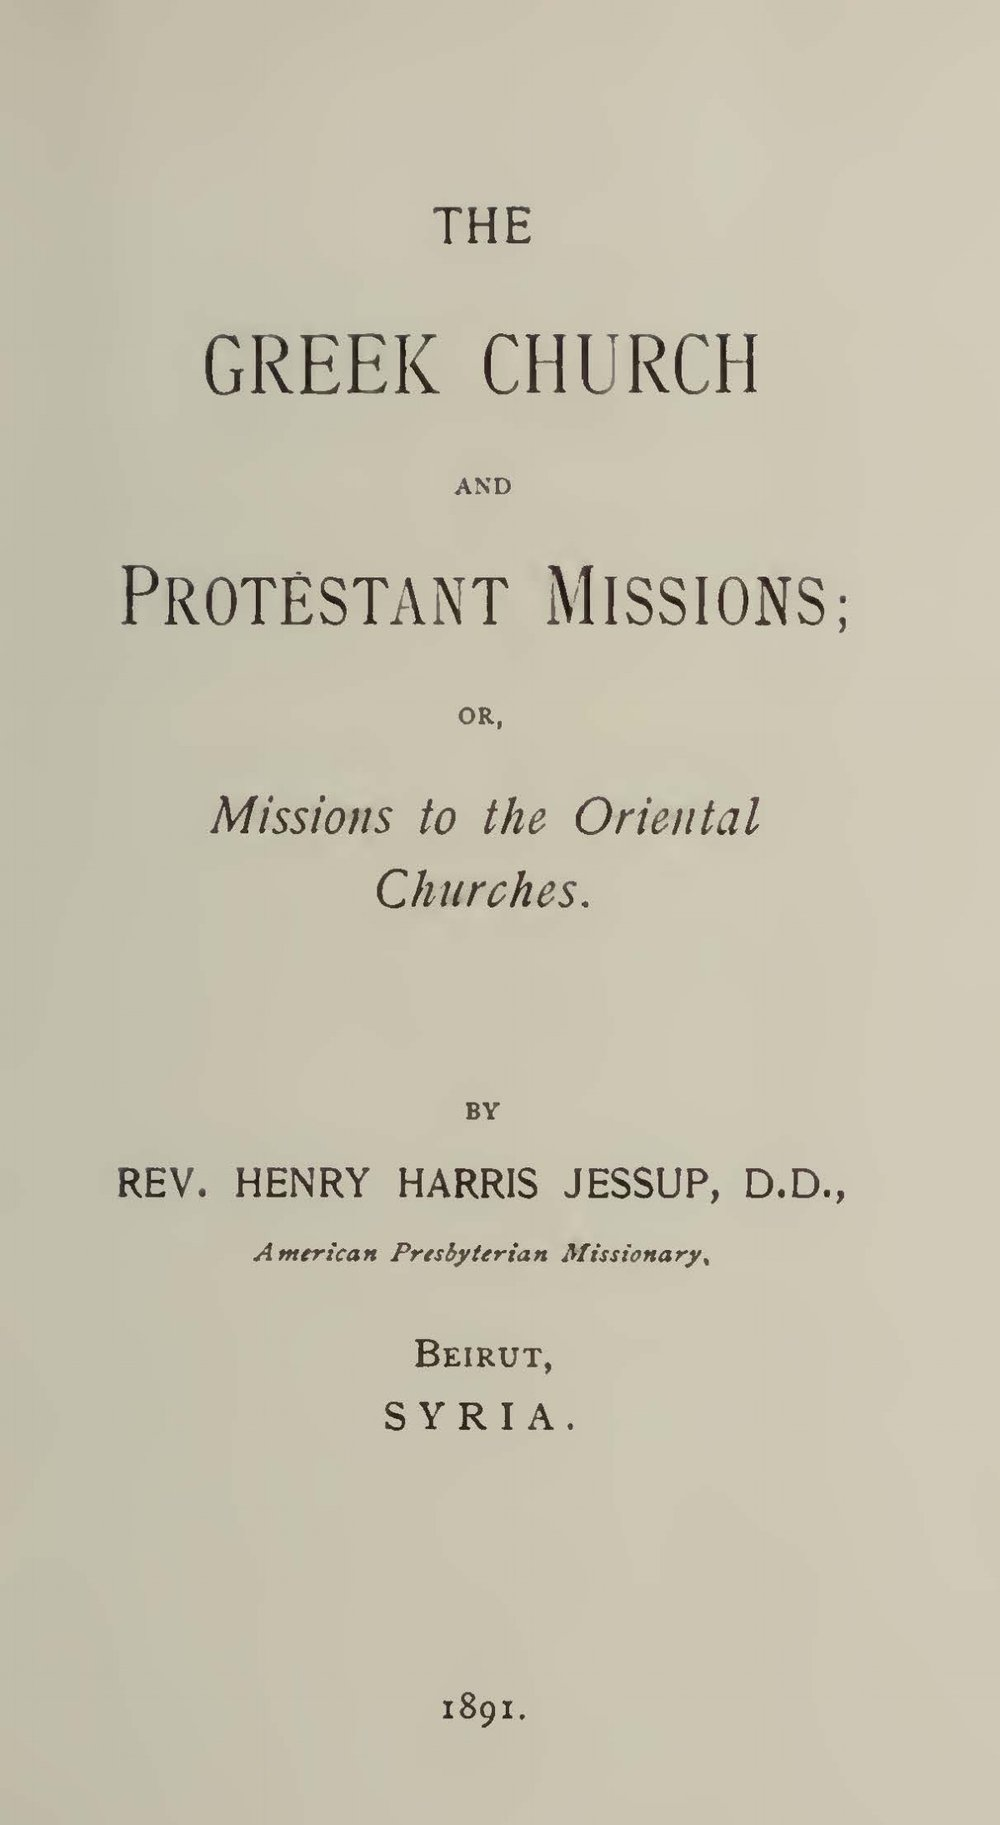 Jessup, Henry Harris, The Greek Church and Protestant Missions Title Page.jpg